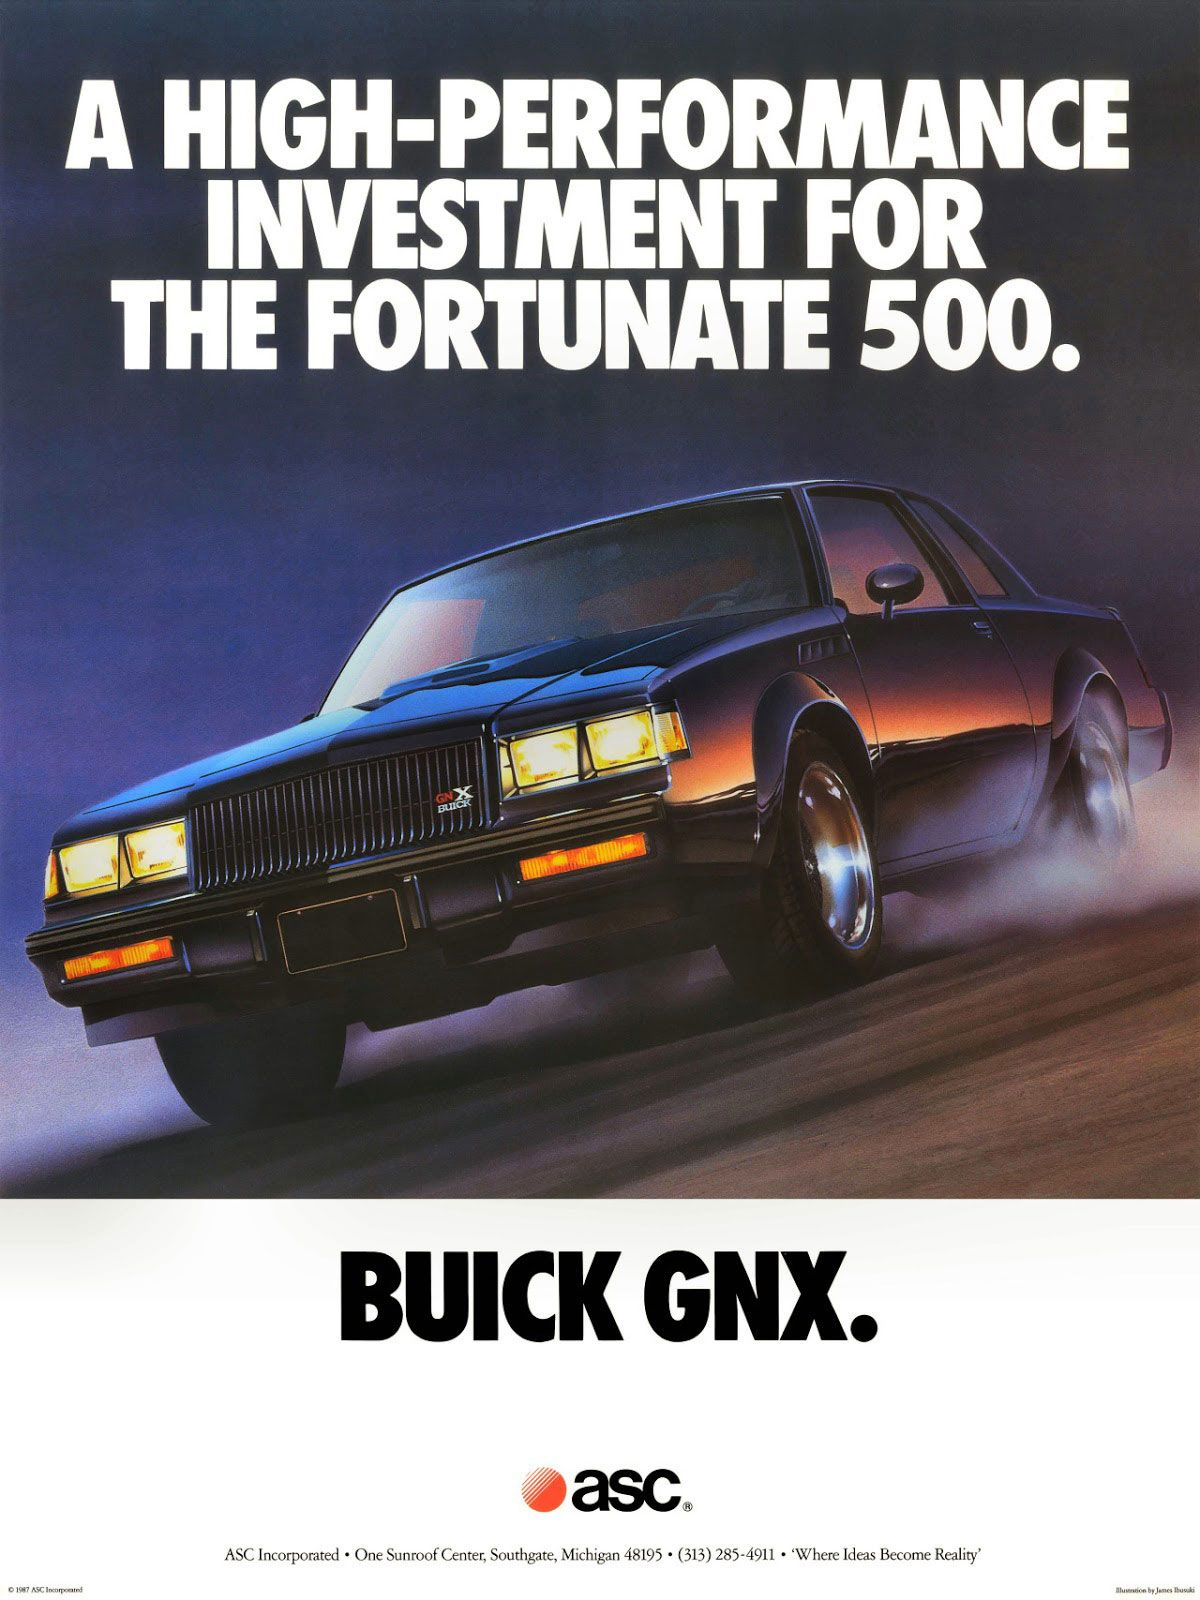 A high-performance investment for the Fortunate 500. The Buick GNX.